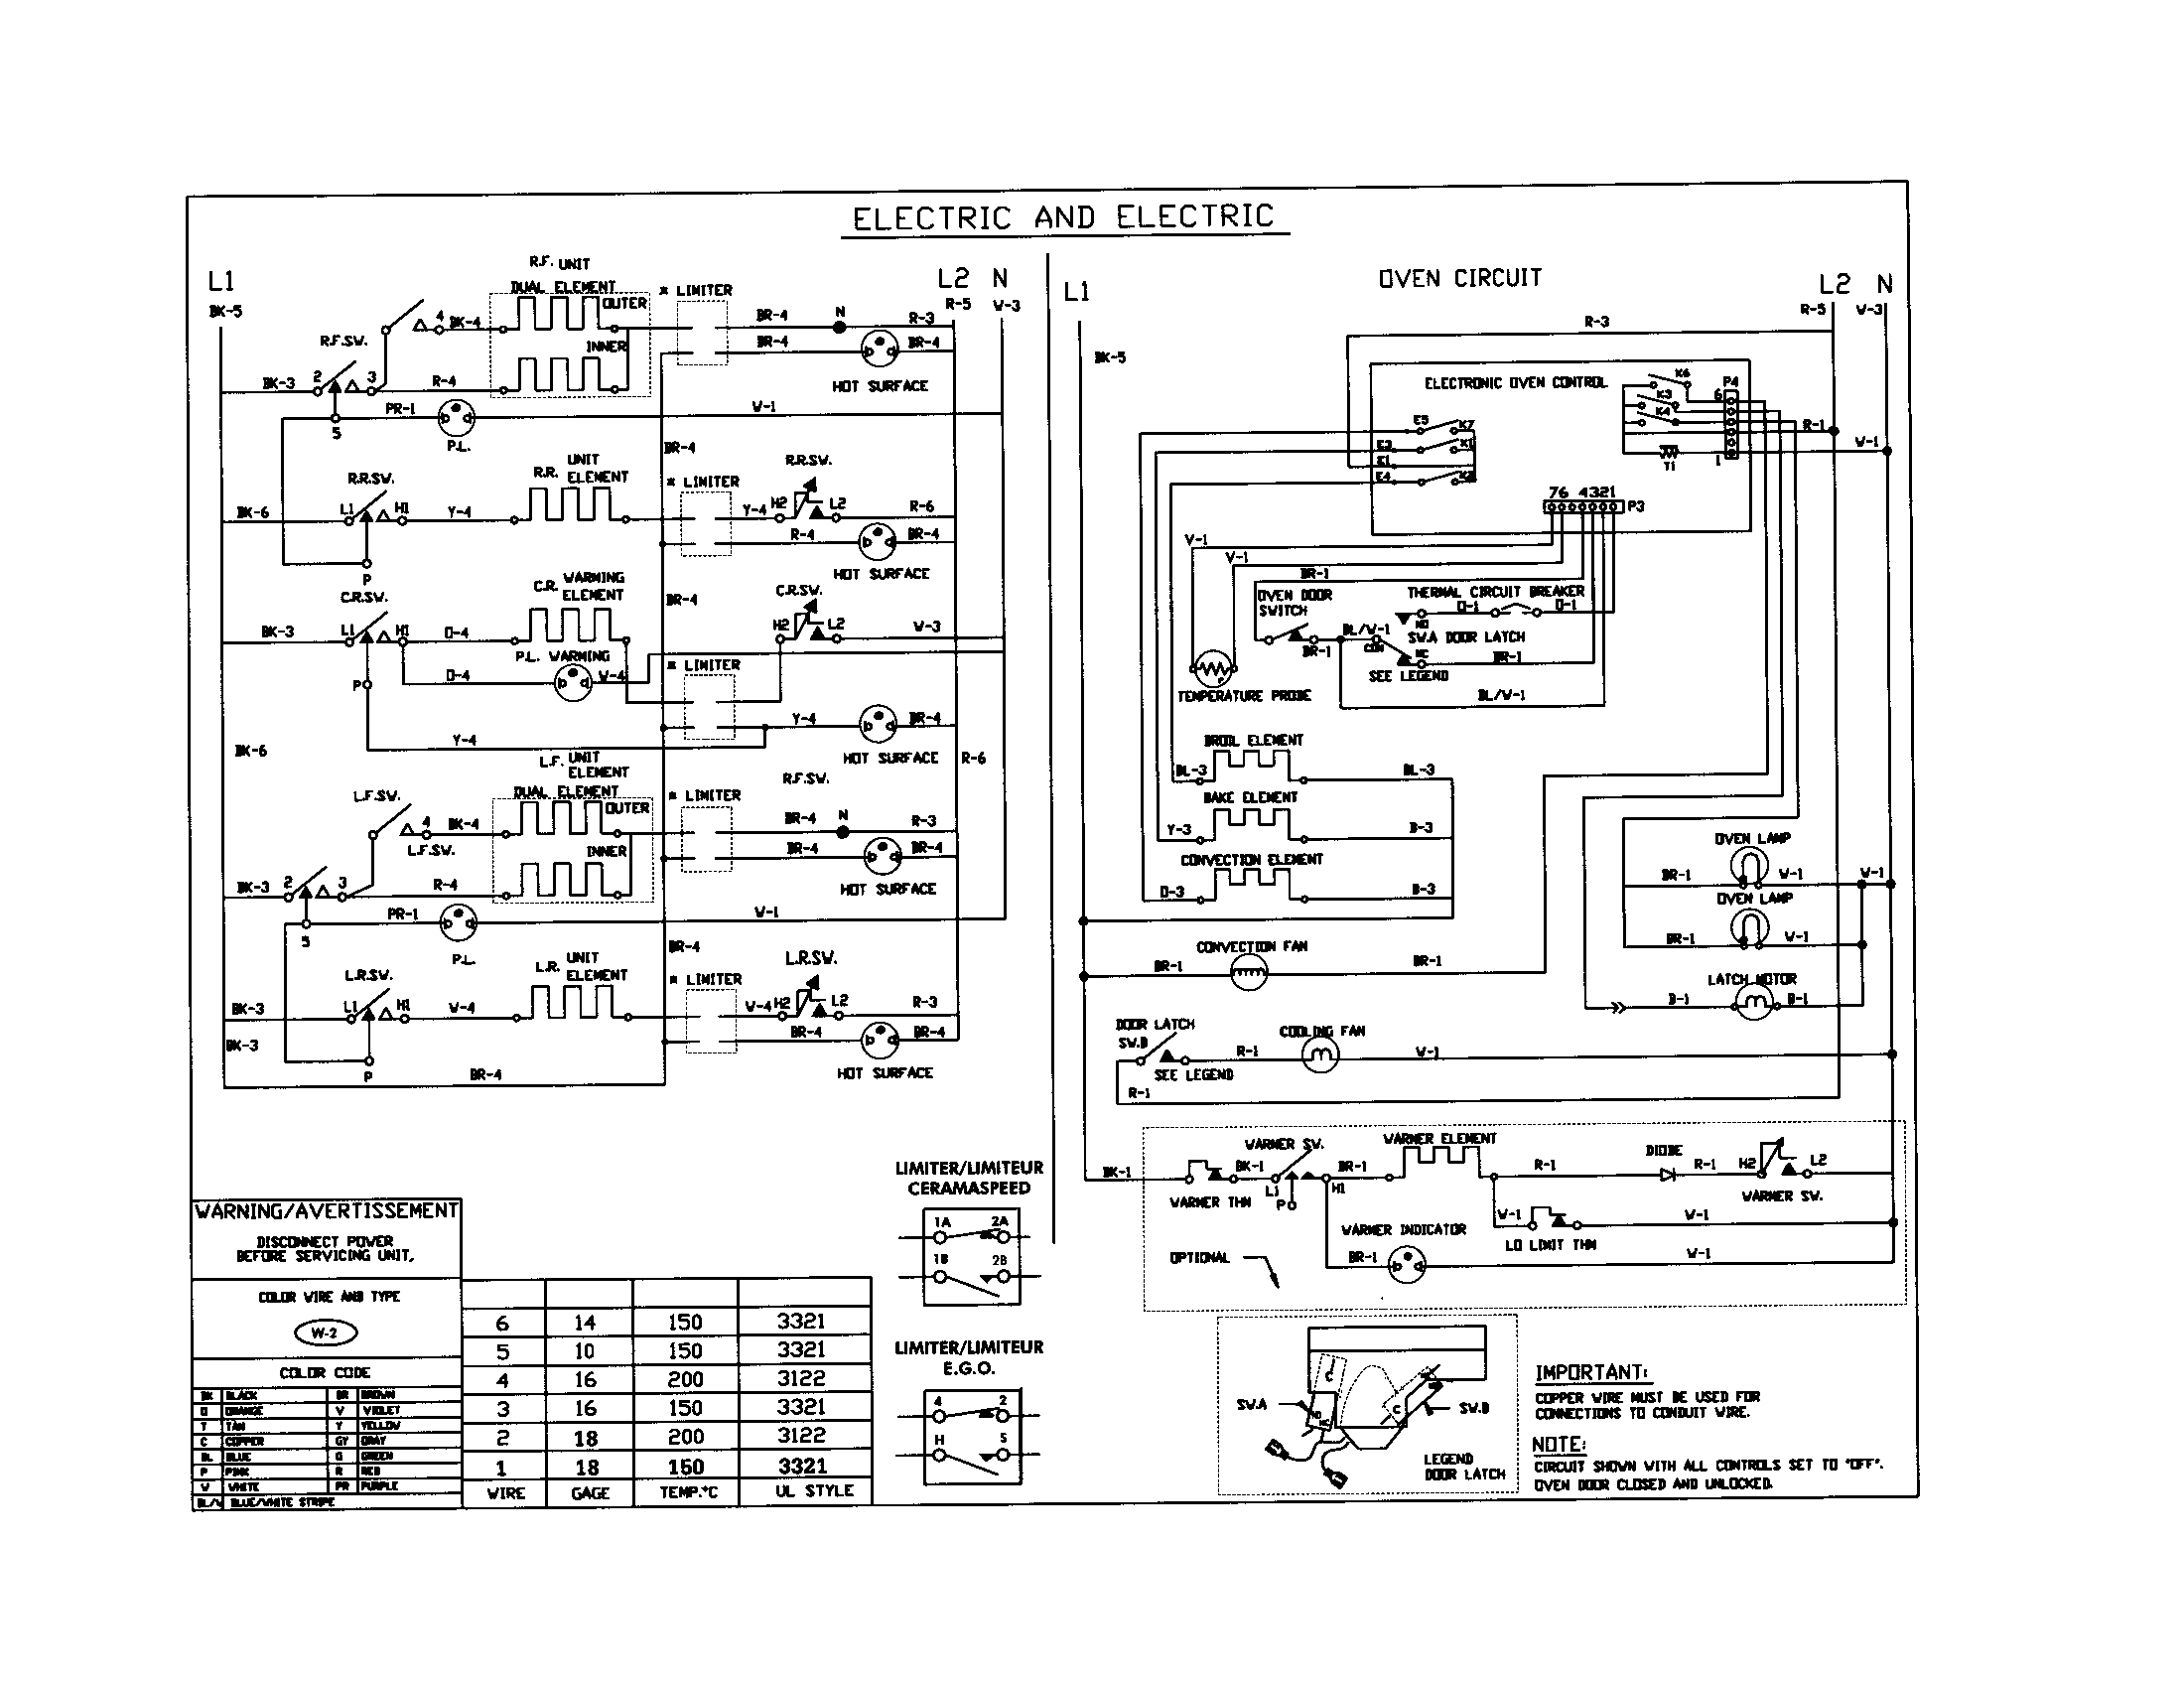 wiring diagram for electric stove top